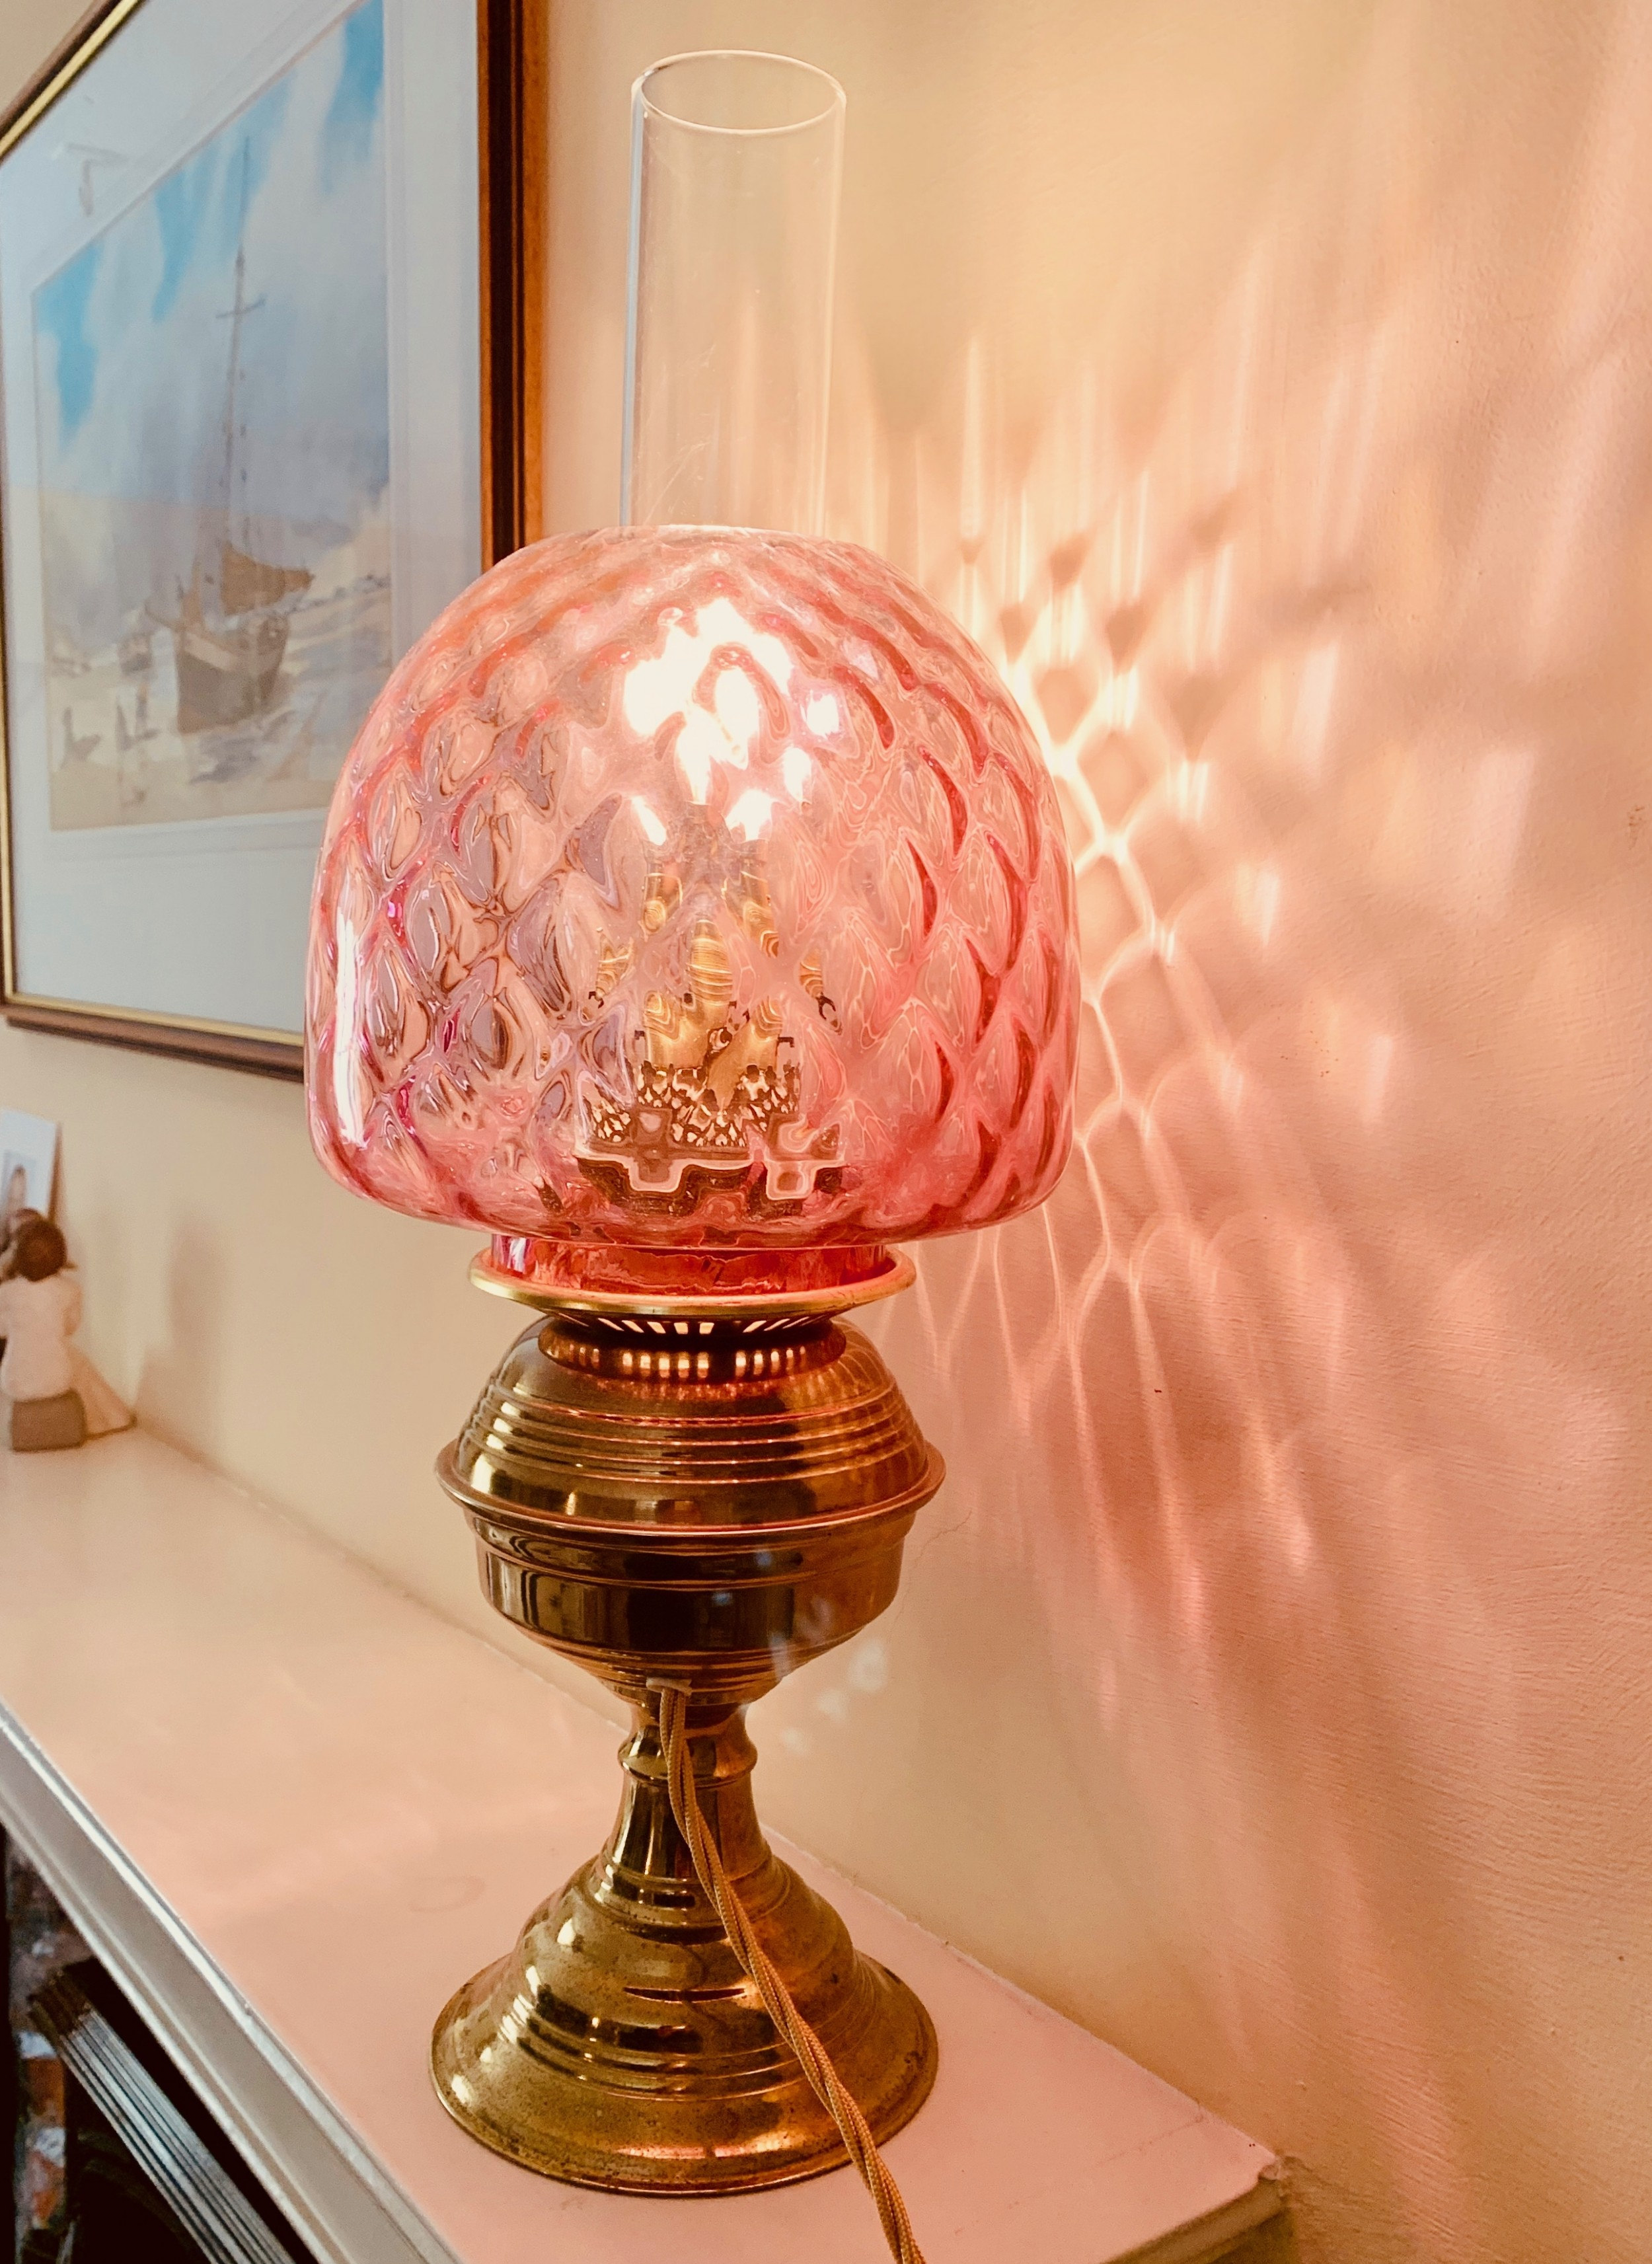 victorian large brass oil lamp with glass shade converted to electrical light